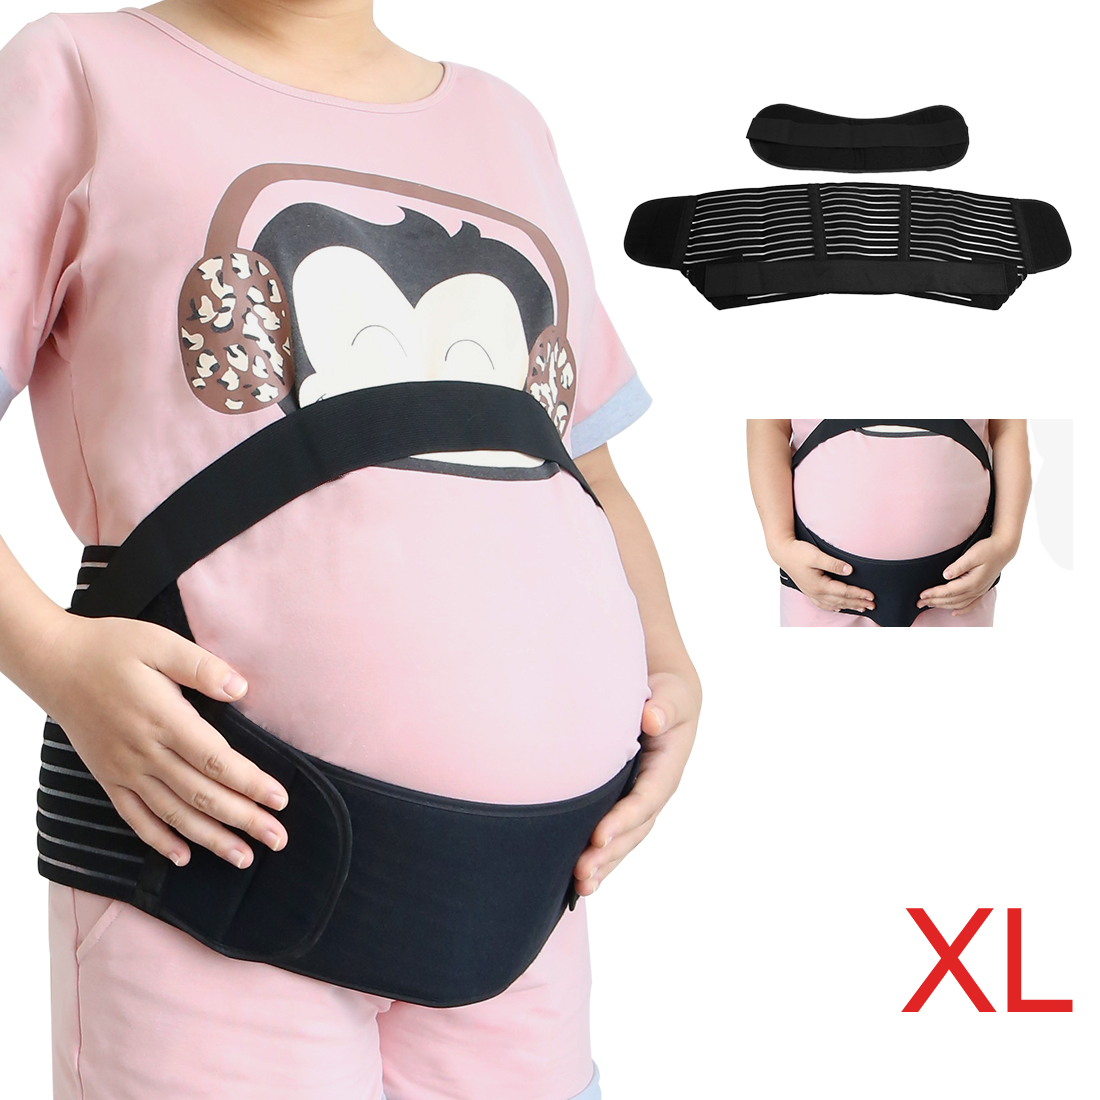 Maternity Support Belt Pregnancy Belly Band Antepartum Abdominal Back Support